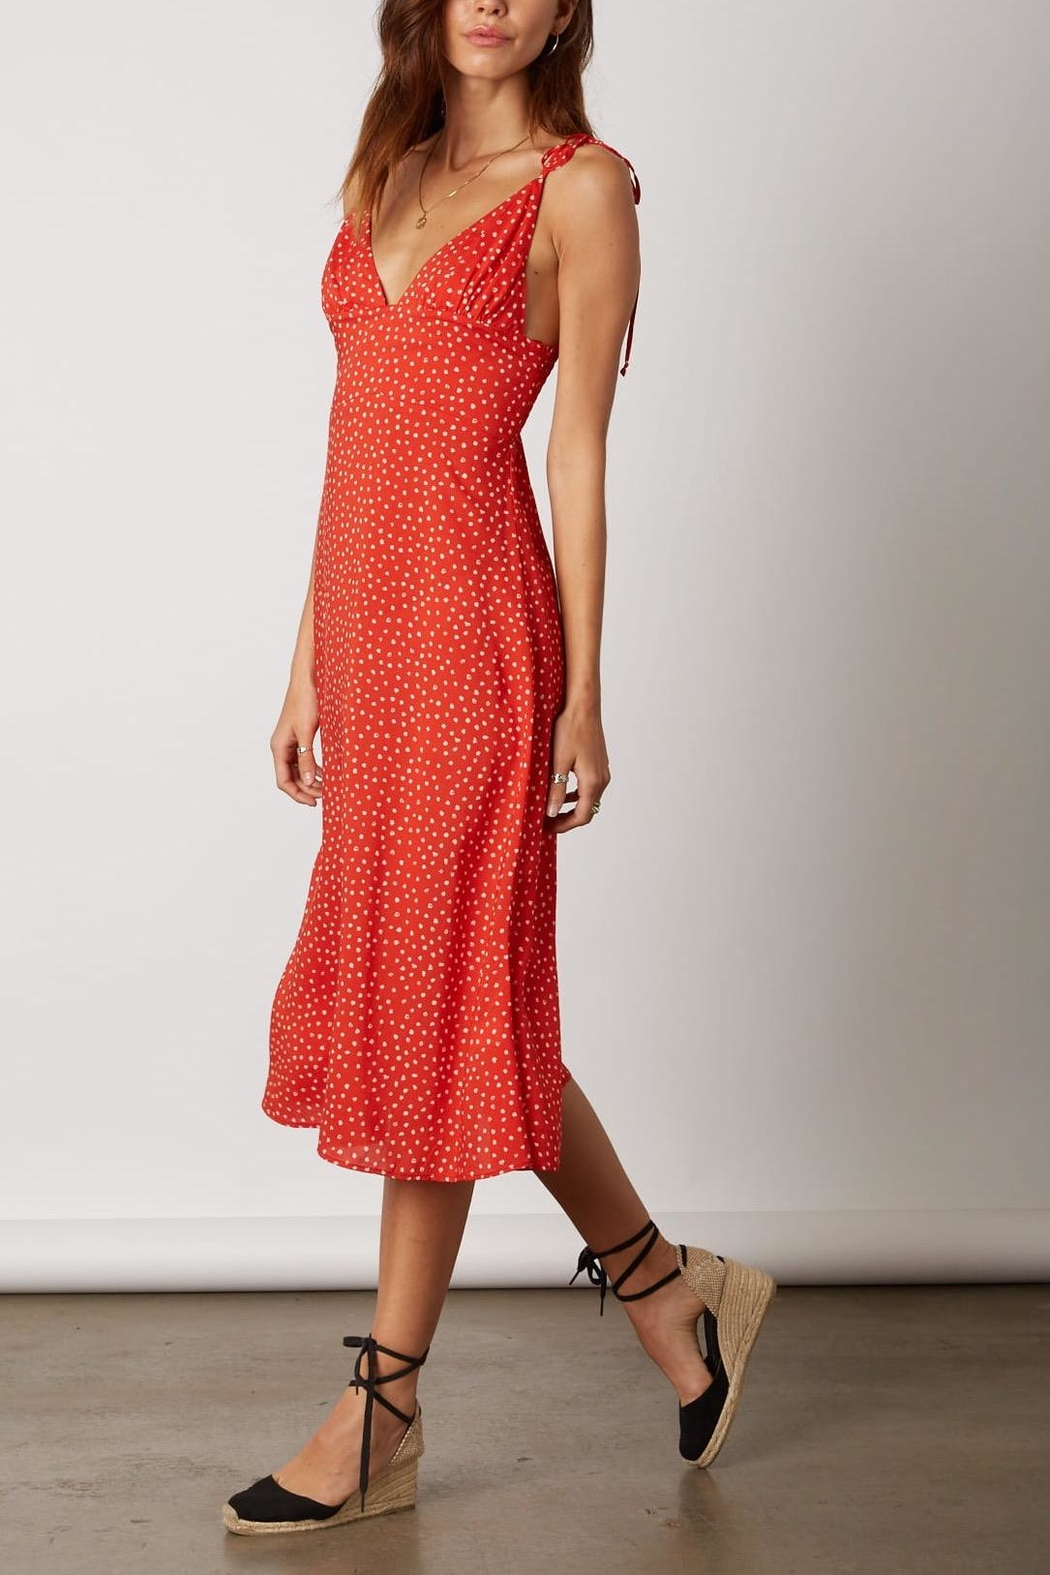 Cotton Candy LA Red Polka-Dot Dress - Front Full Image